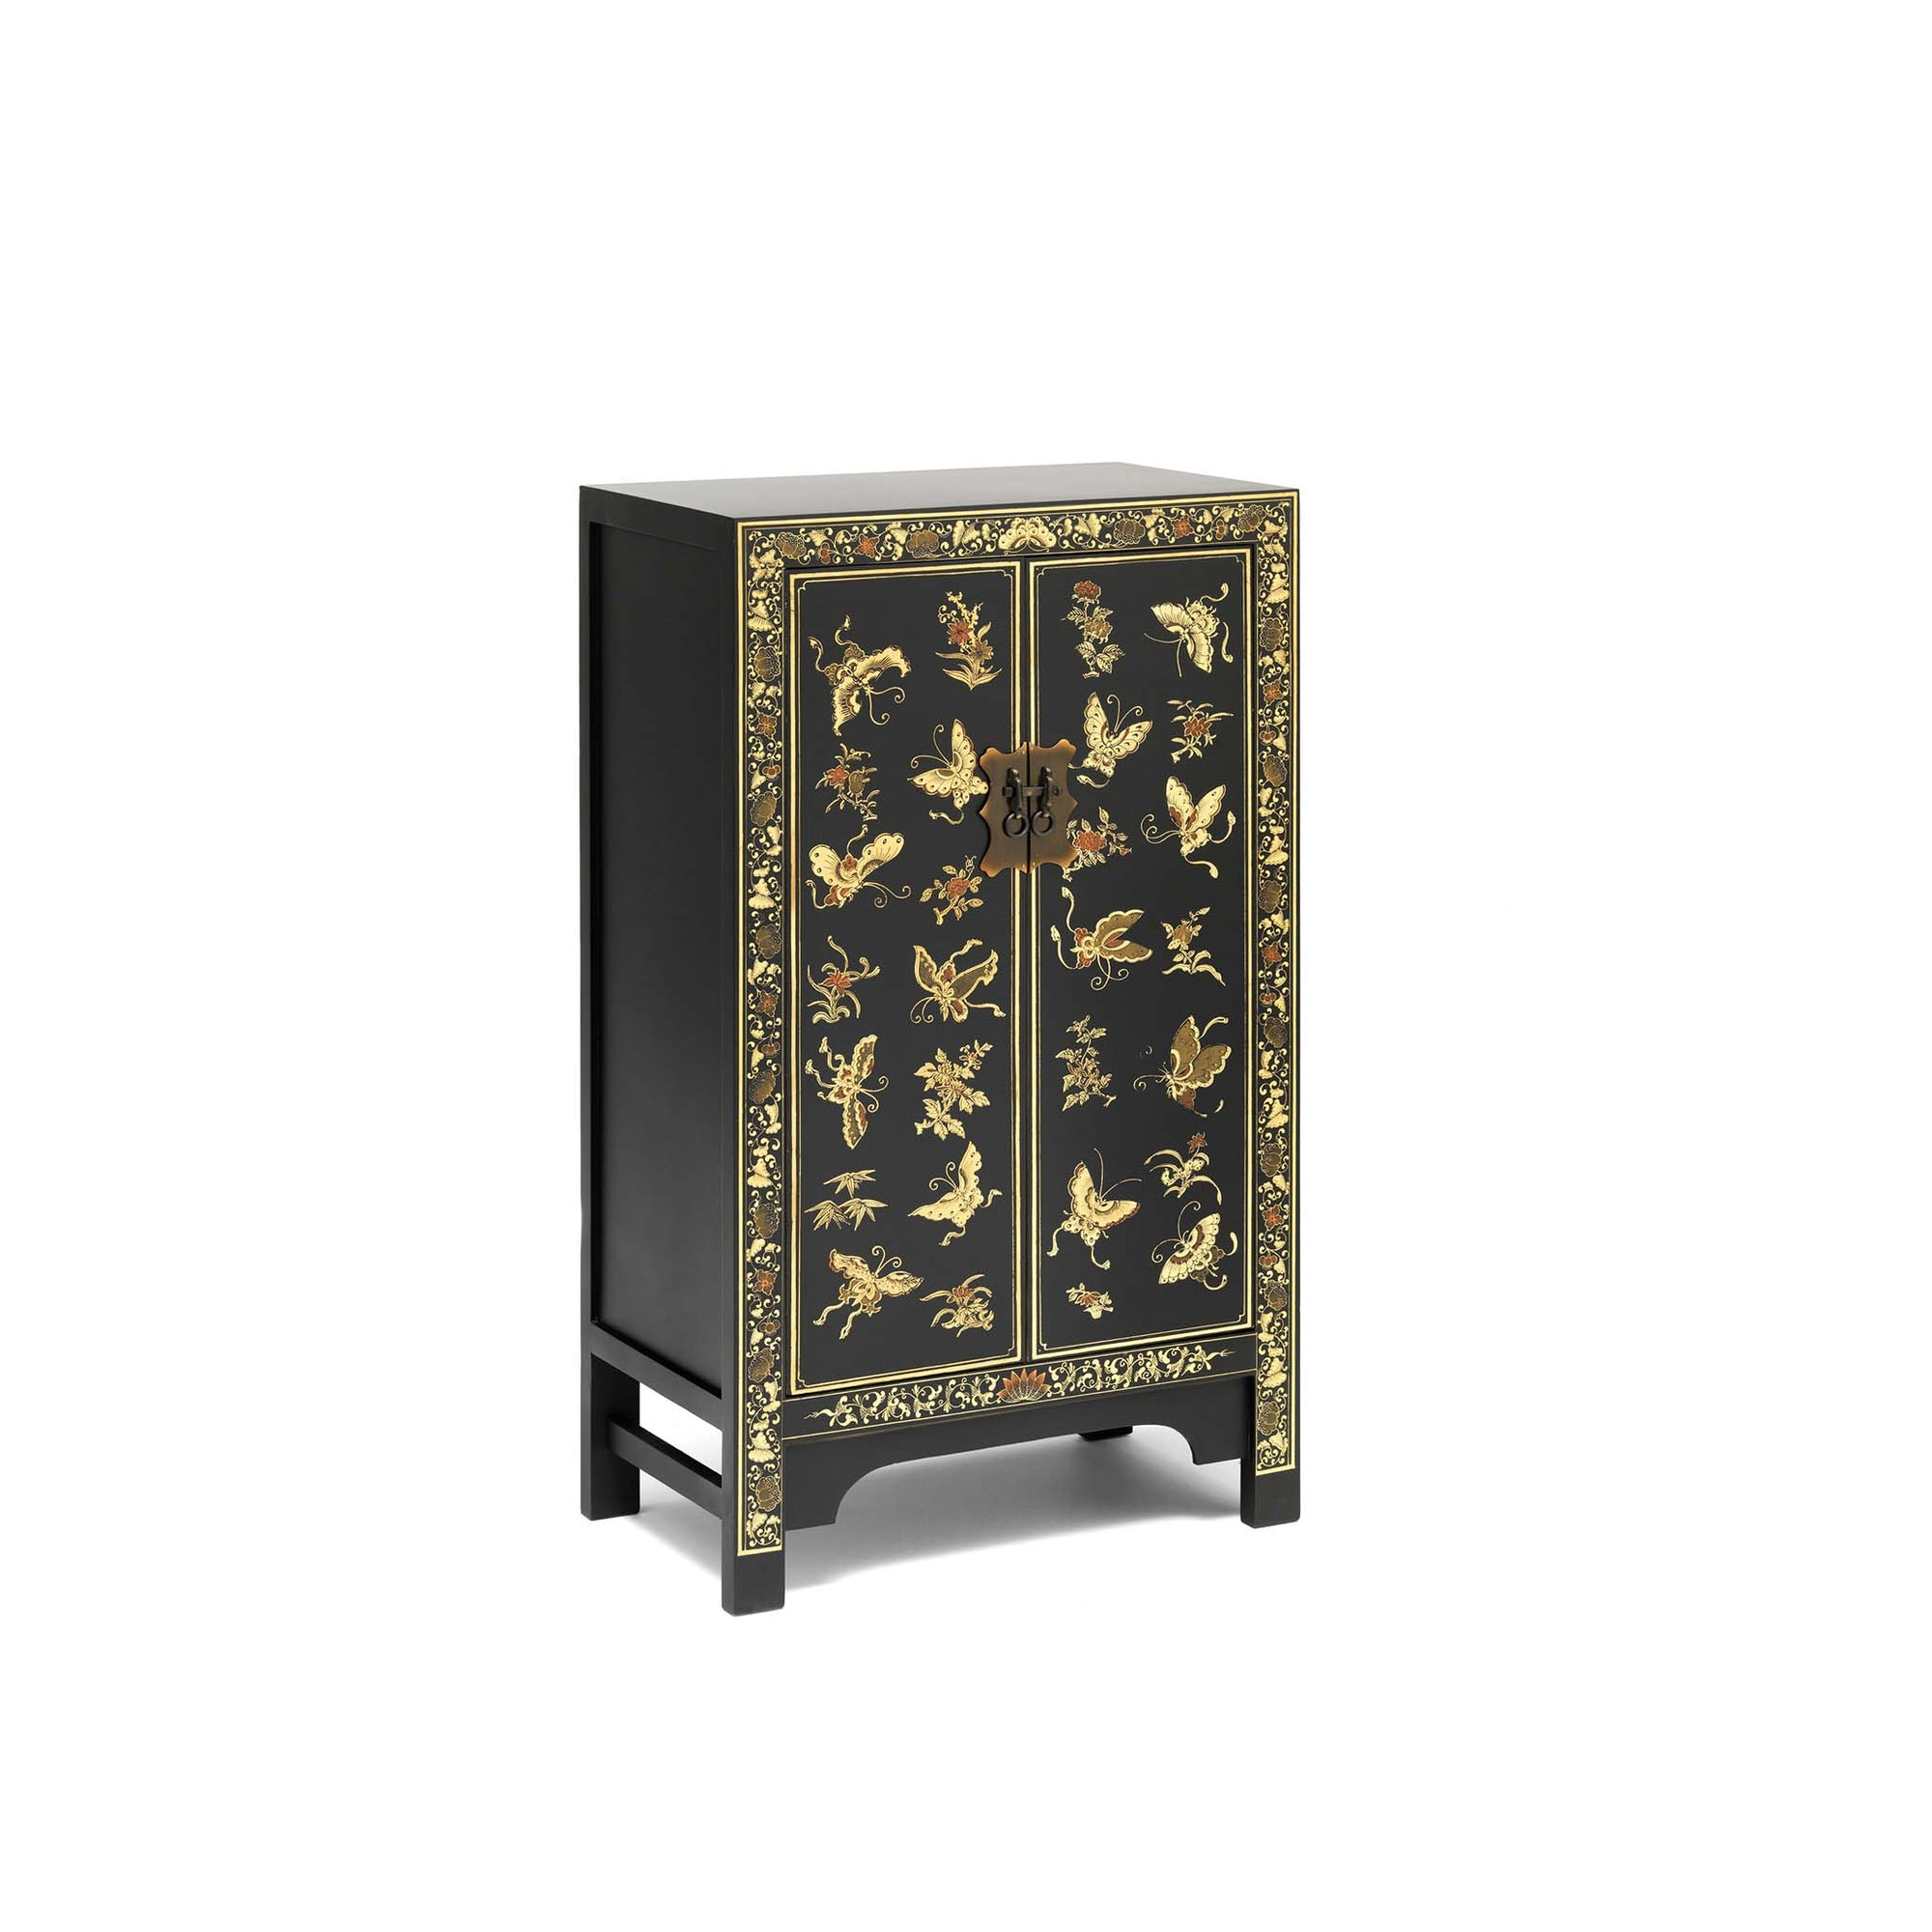 The Nine Schools Oriental Decorated Black Medium Cabinet by Roseland Furniture